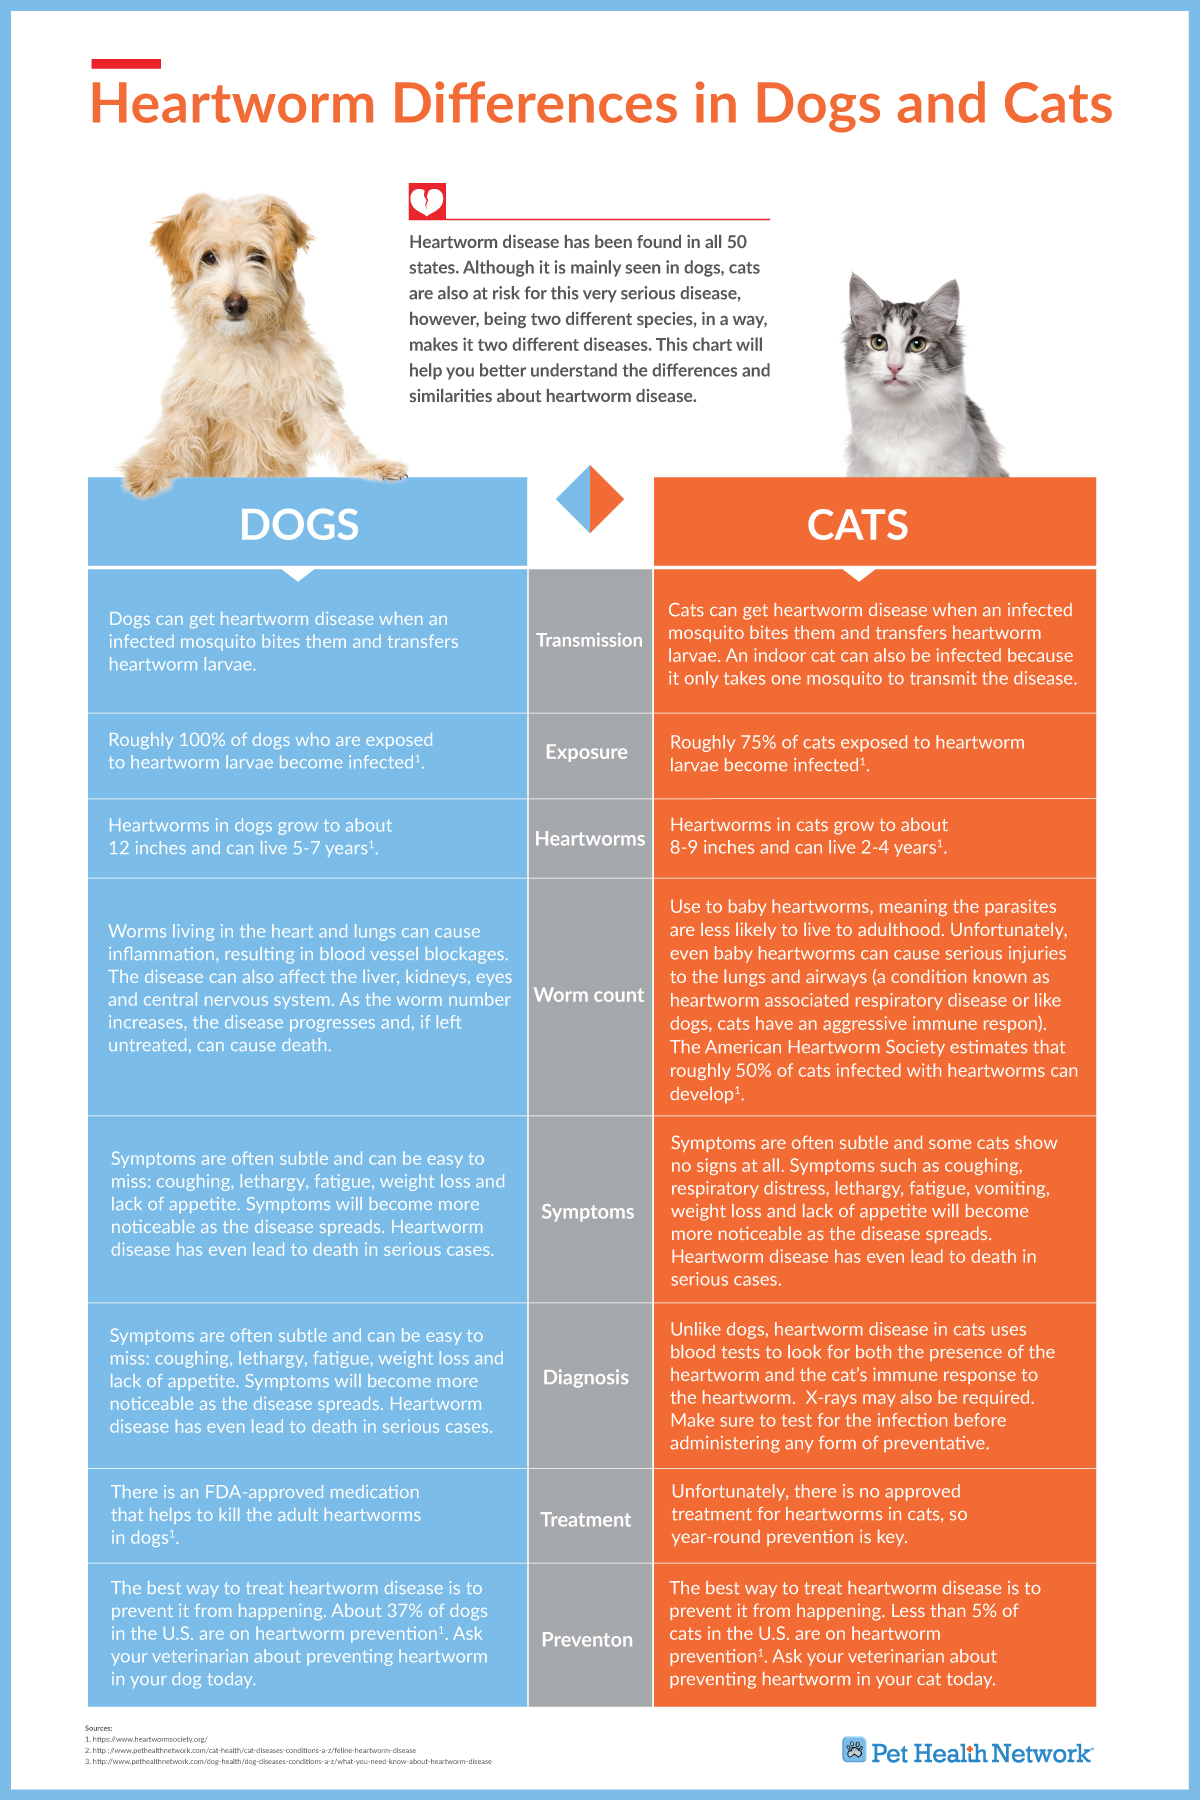 Info Graphics: Heartworm Differences in Dogs and Cats